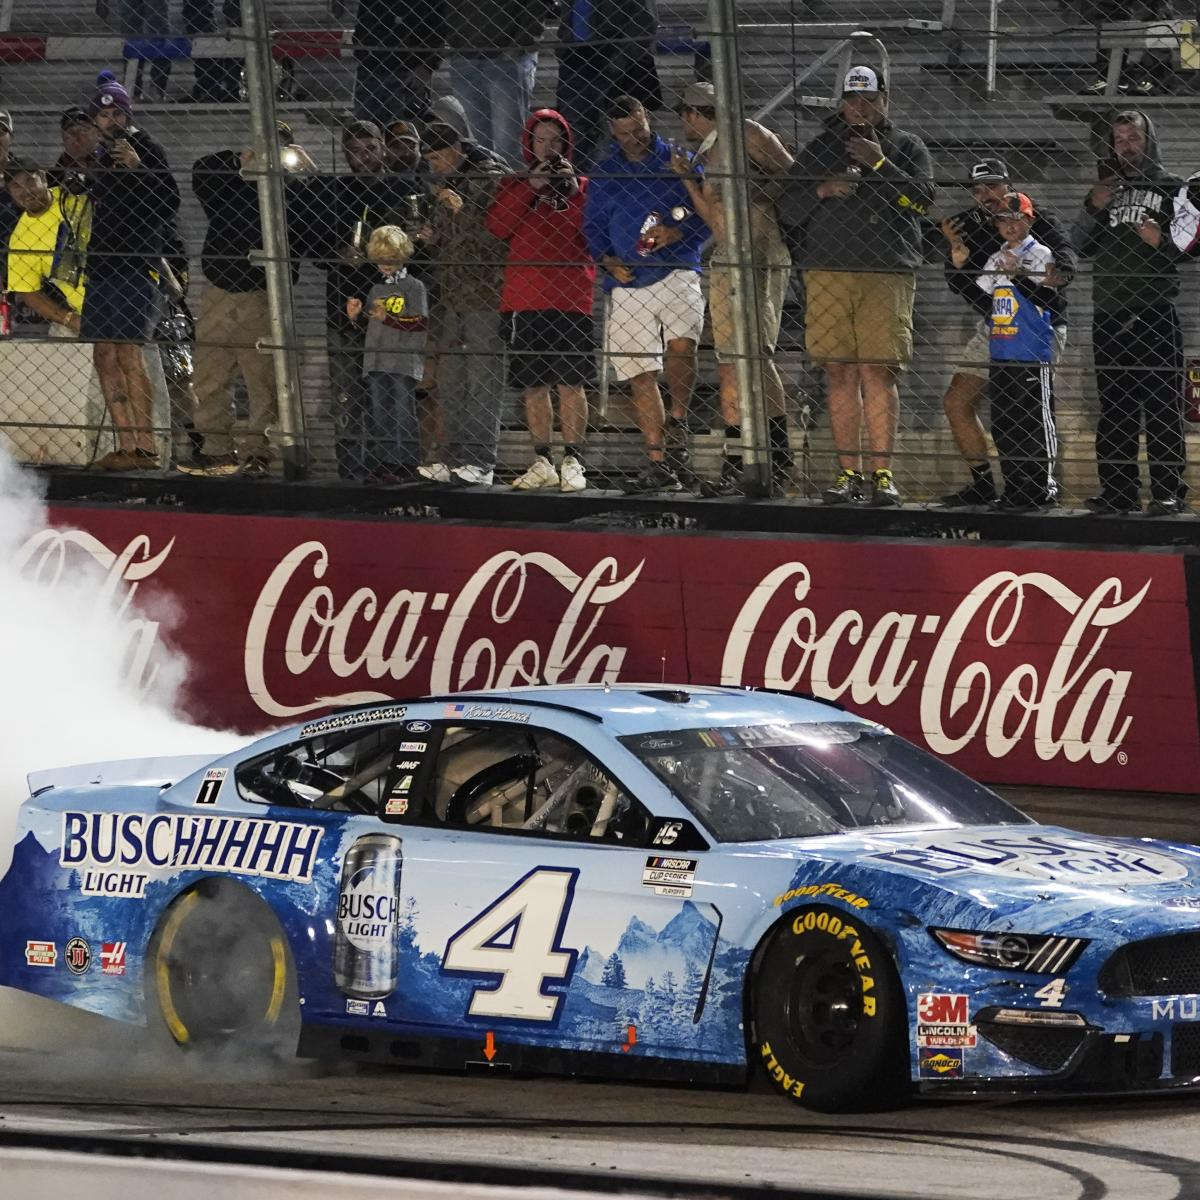 NASCAR at Texas 2020: Odds, TV Schedule, Live Stream and Drivers